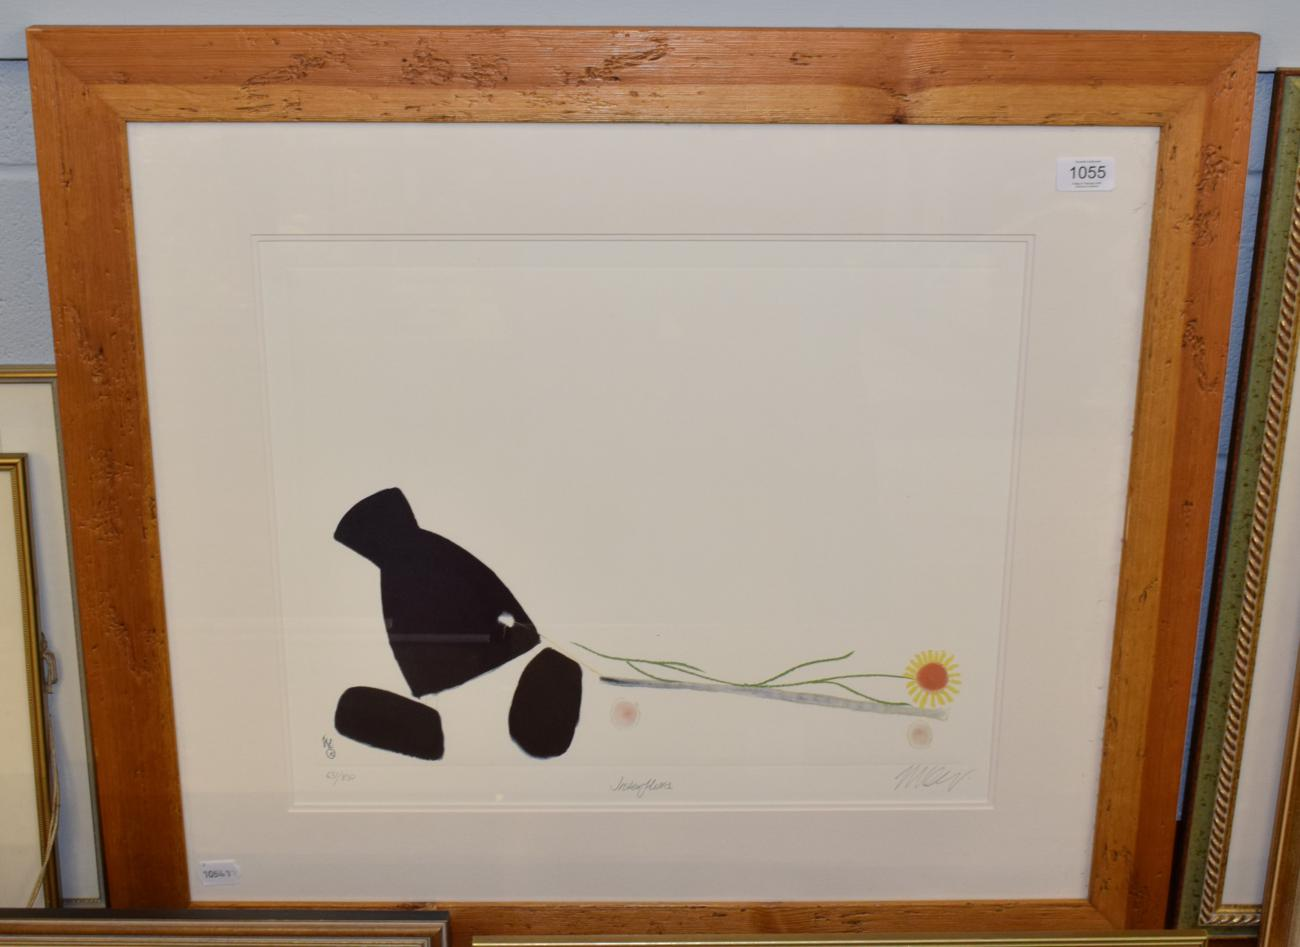 Lot 1055 - Mackenzie Thorpe ''Interflora'', signed and numbered limited edition print, 631/850, 42cm by 50cm